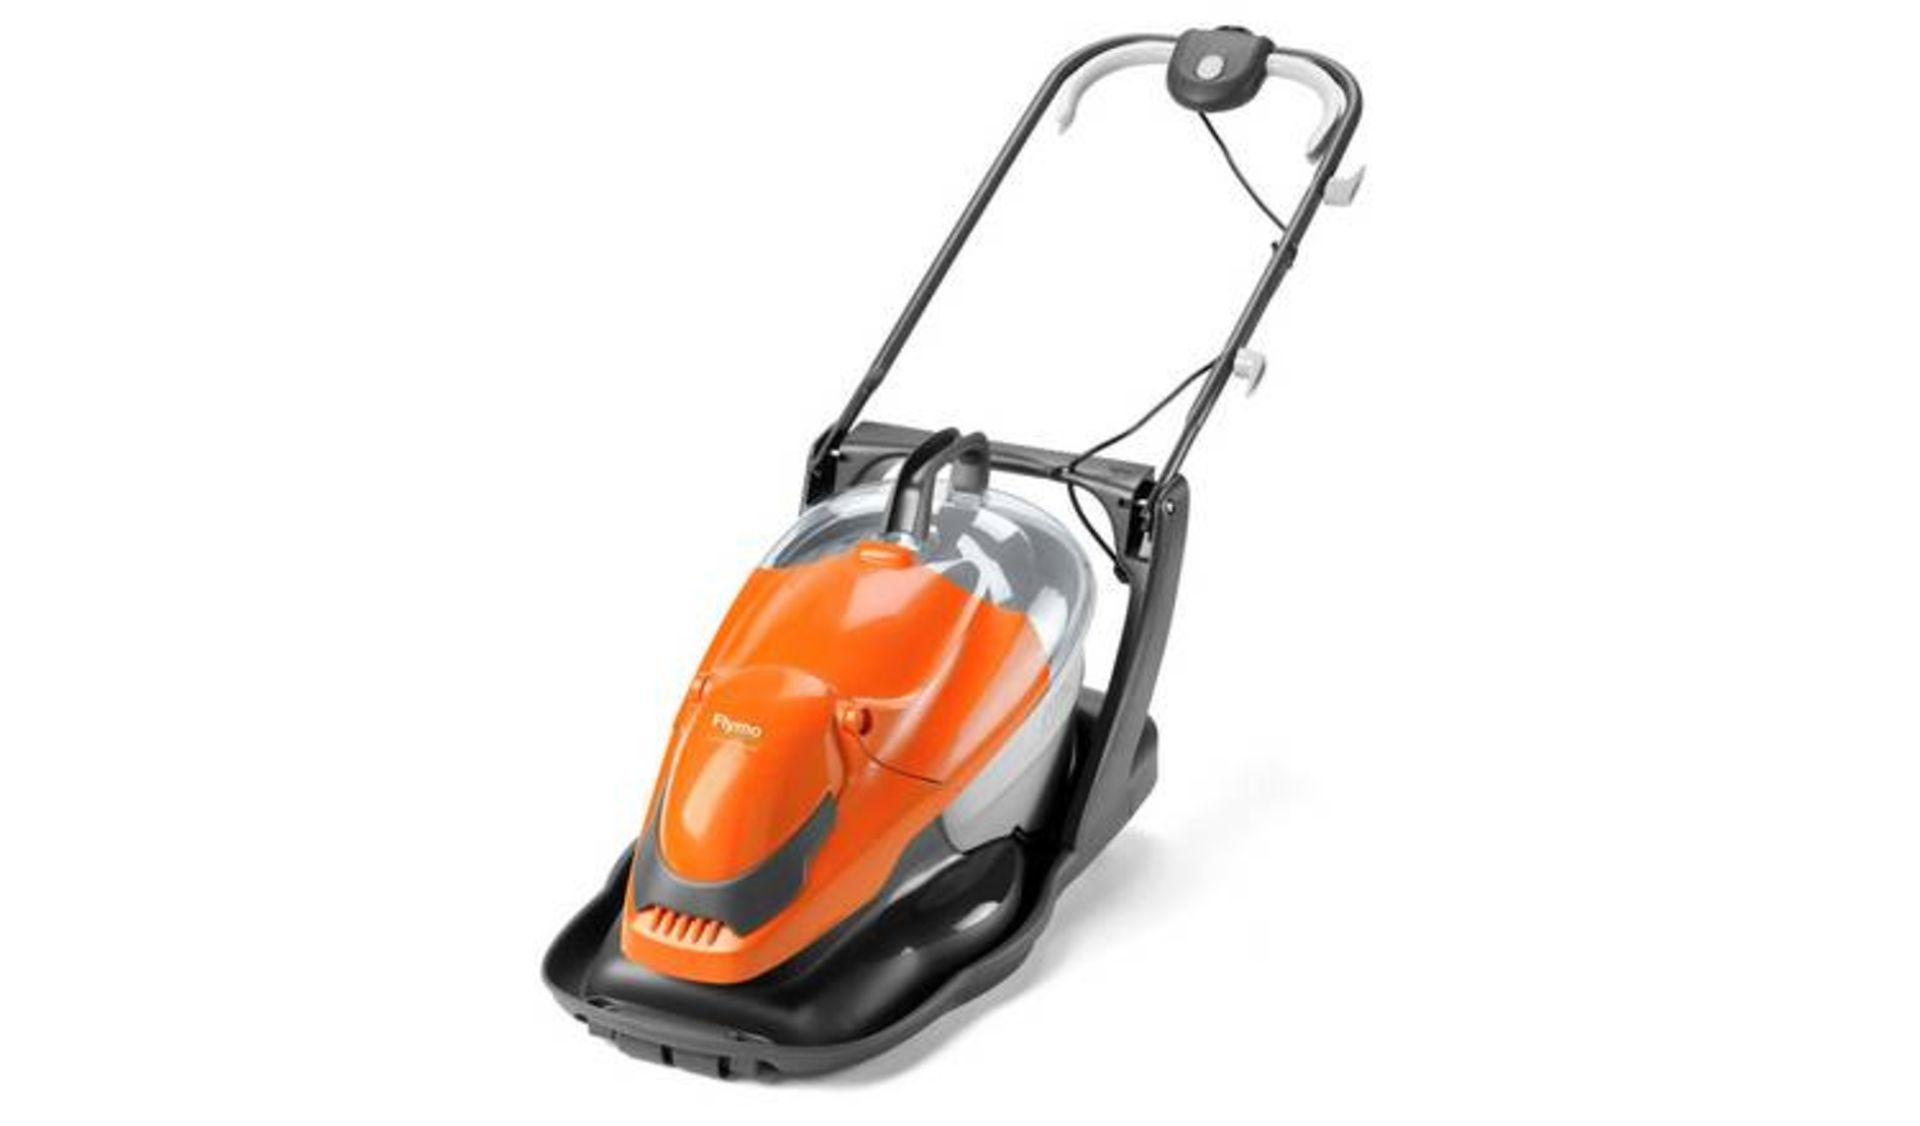 (P5) 1x Flymo EasiGlide 360V Electric Hover Lawnmower RRP £139.00. - Image 2 of 3